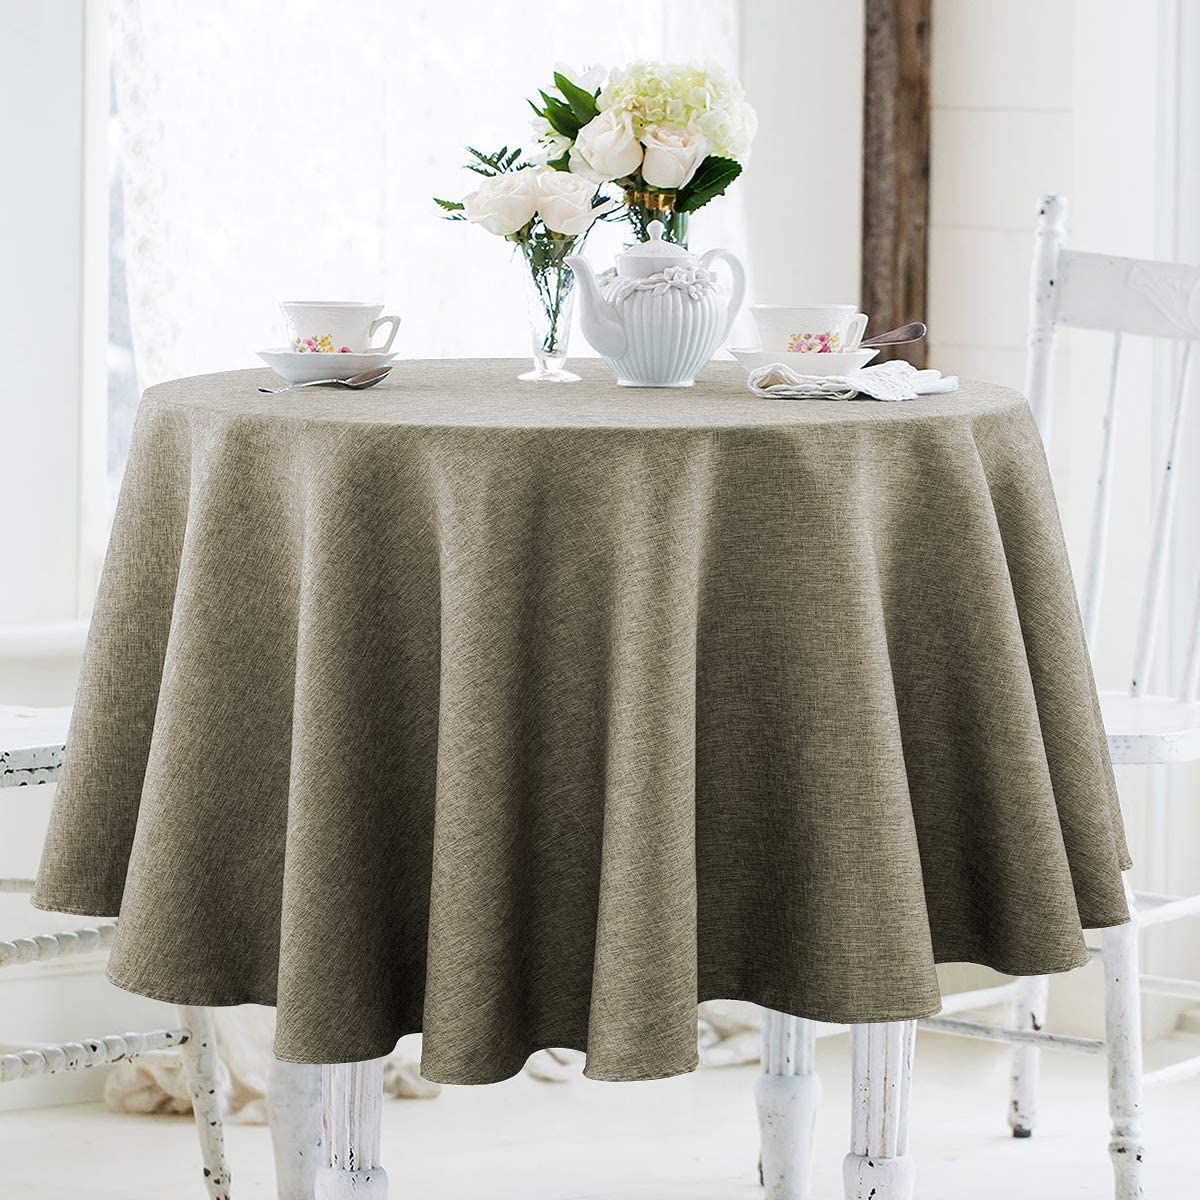 JUCFHY Round Table Cloth,Linen Rustic Tablecloth Heavy Duty Fabric,Stain-Proof,Water Resistant Washable Table Cloths,Decorative Round Table Cover for Kitchen,Holiday(60 Inch Round,Flax Linen)